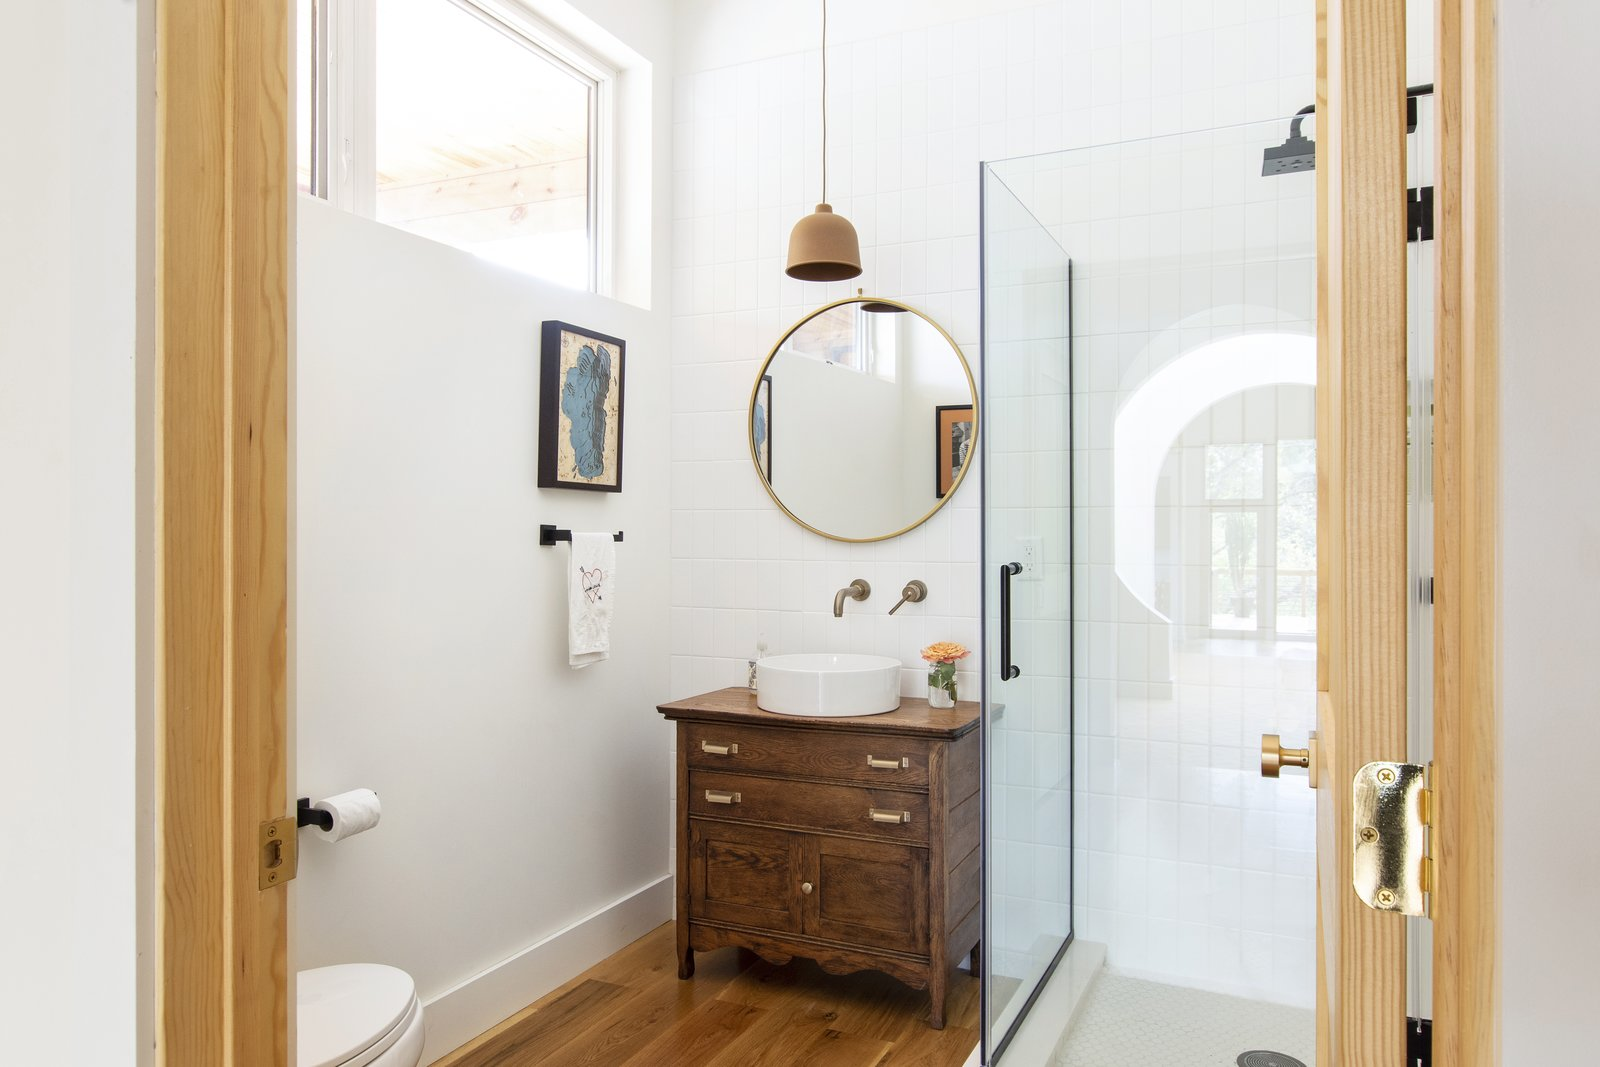 Bath Room, One Piece Toilet, Light Hardwood Floor, Vessel Sink, Corner Shower, Pendant Lighting, Subway Tile Wall, and Wood Counter  Westwood House